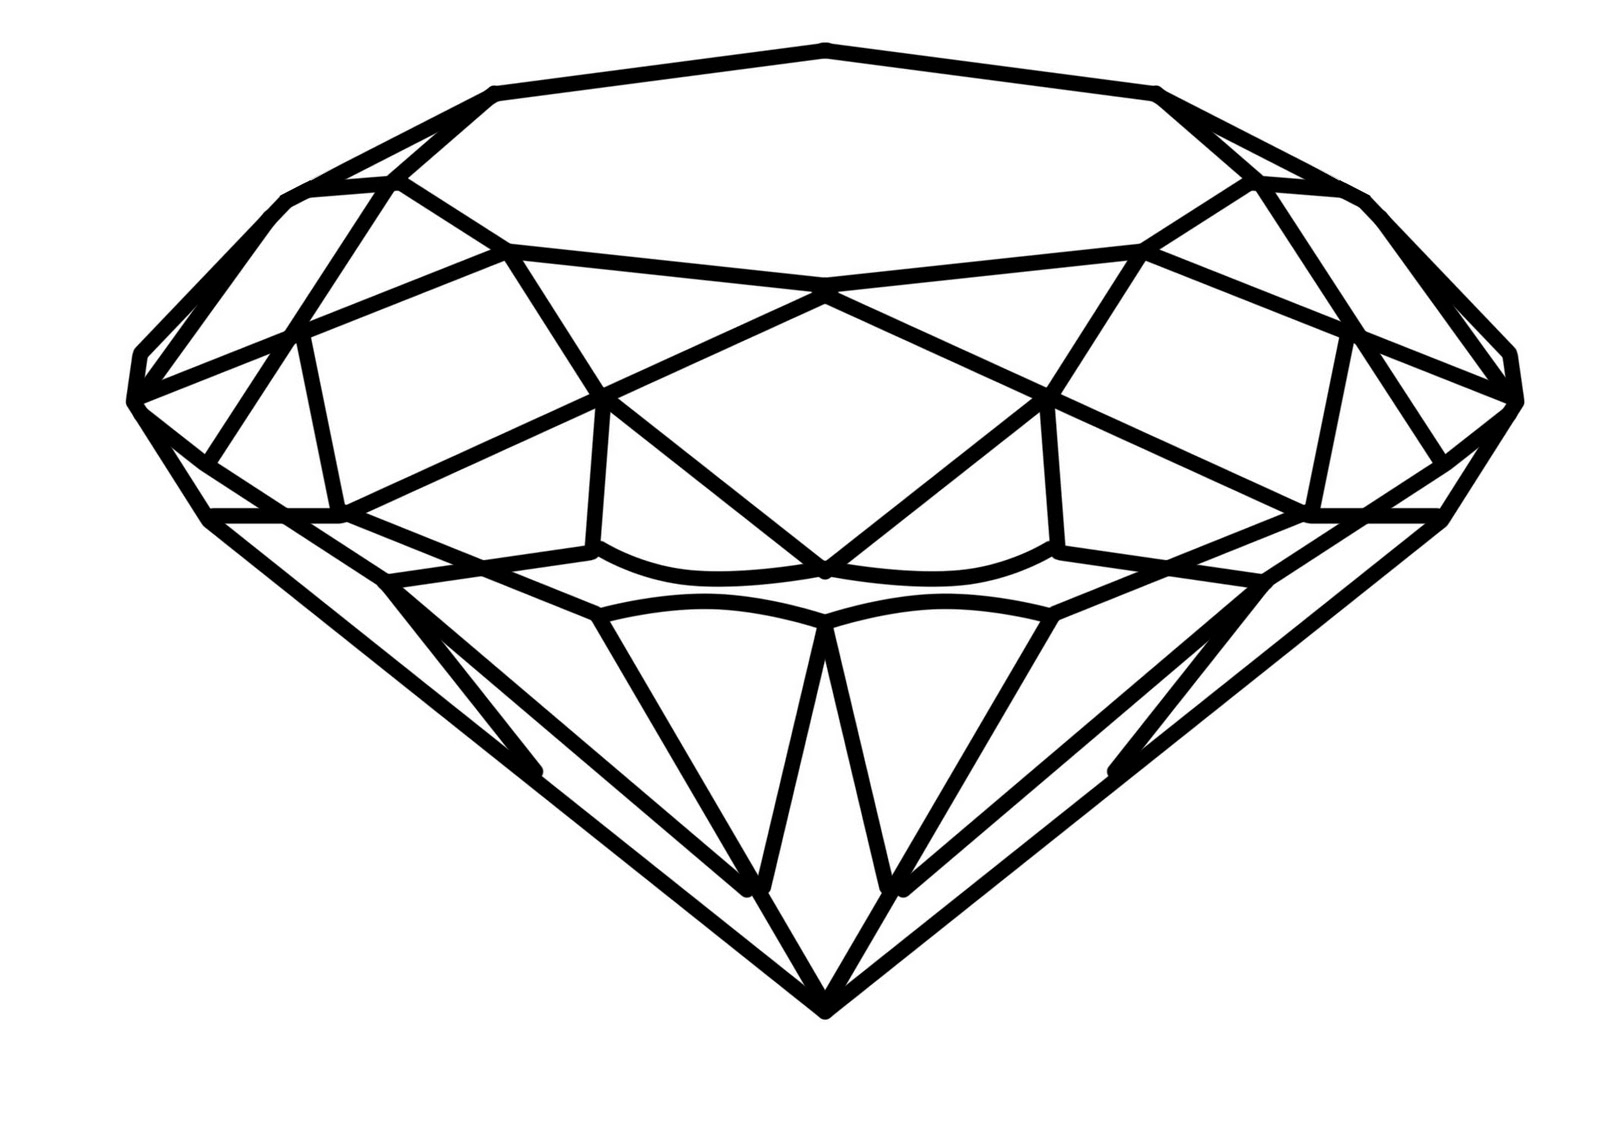 1600x1131 Simple 3d Diamond Drawing How To Draw A Diamond Free Download